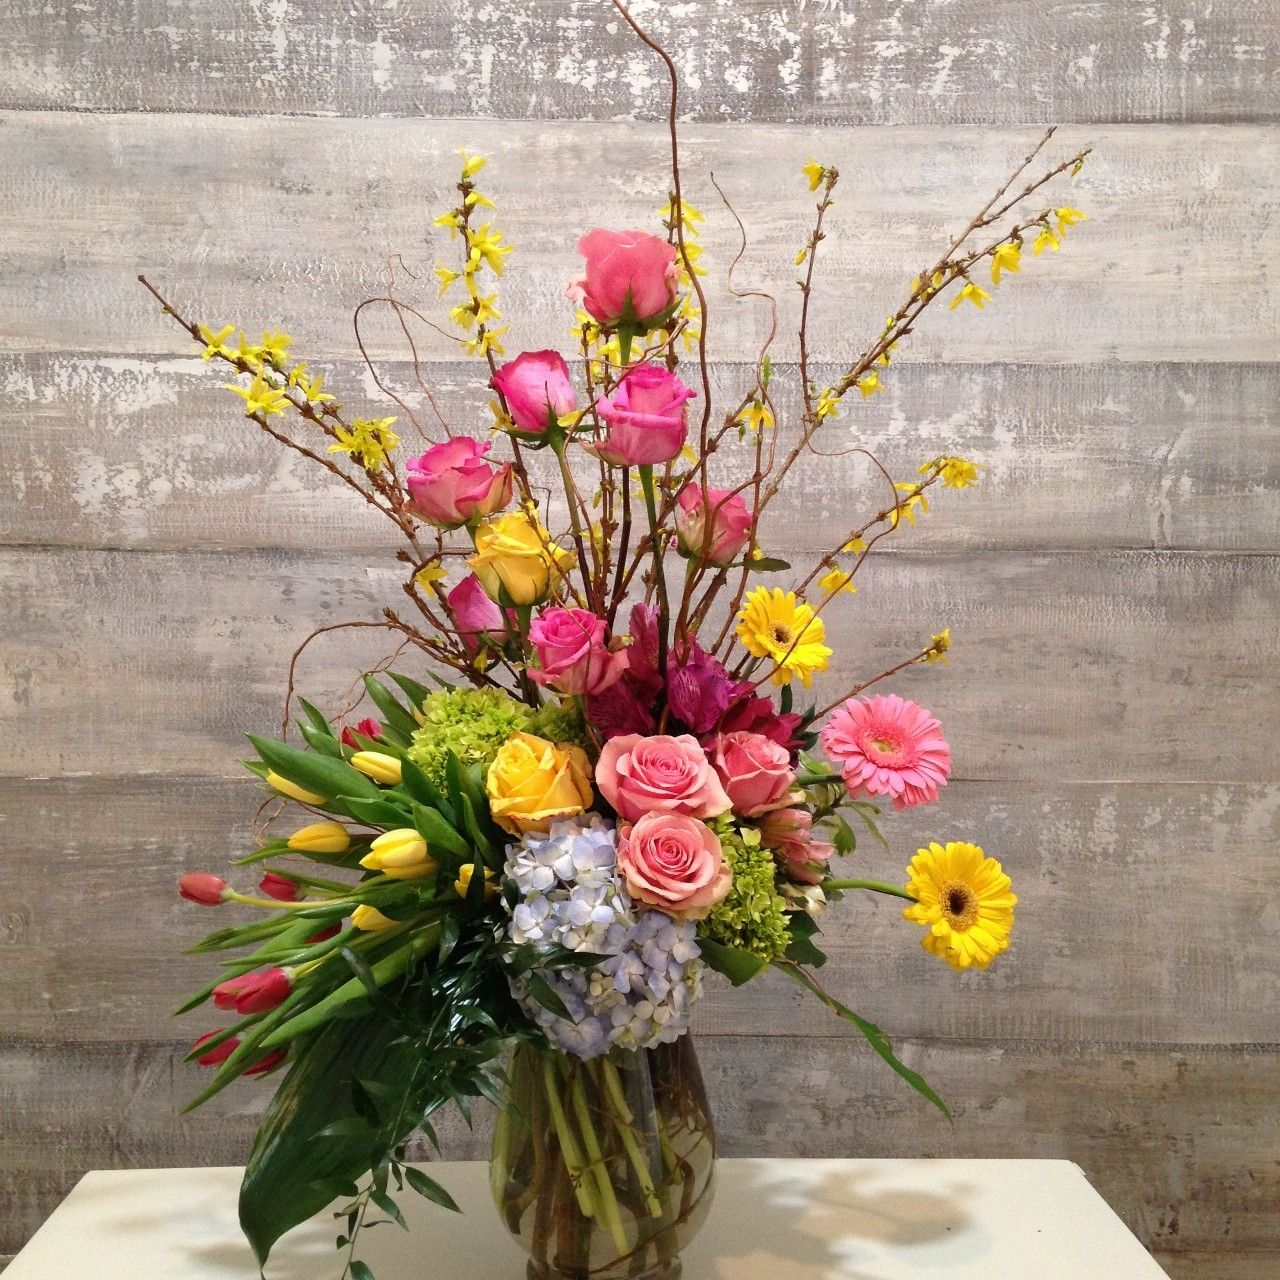 Flower and color combinations may vary slightly with